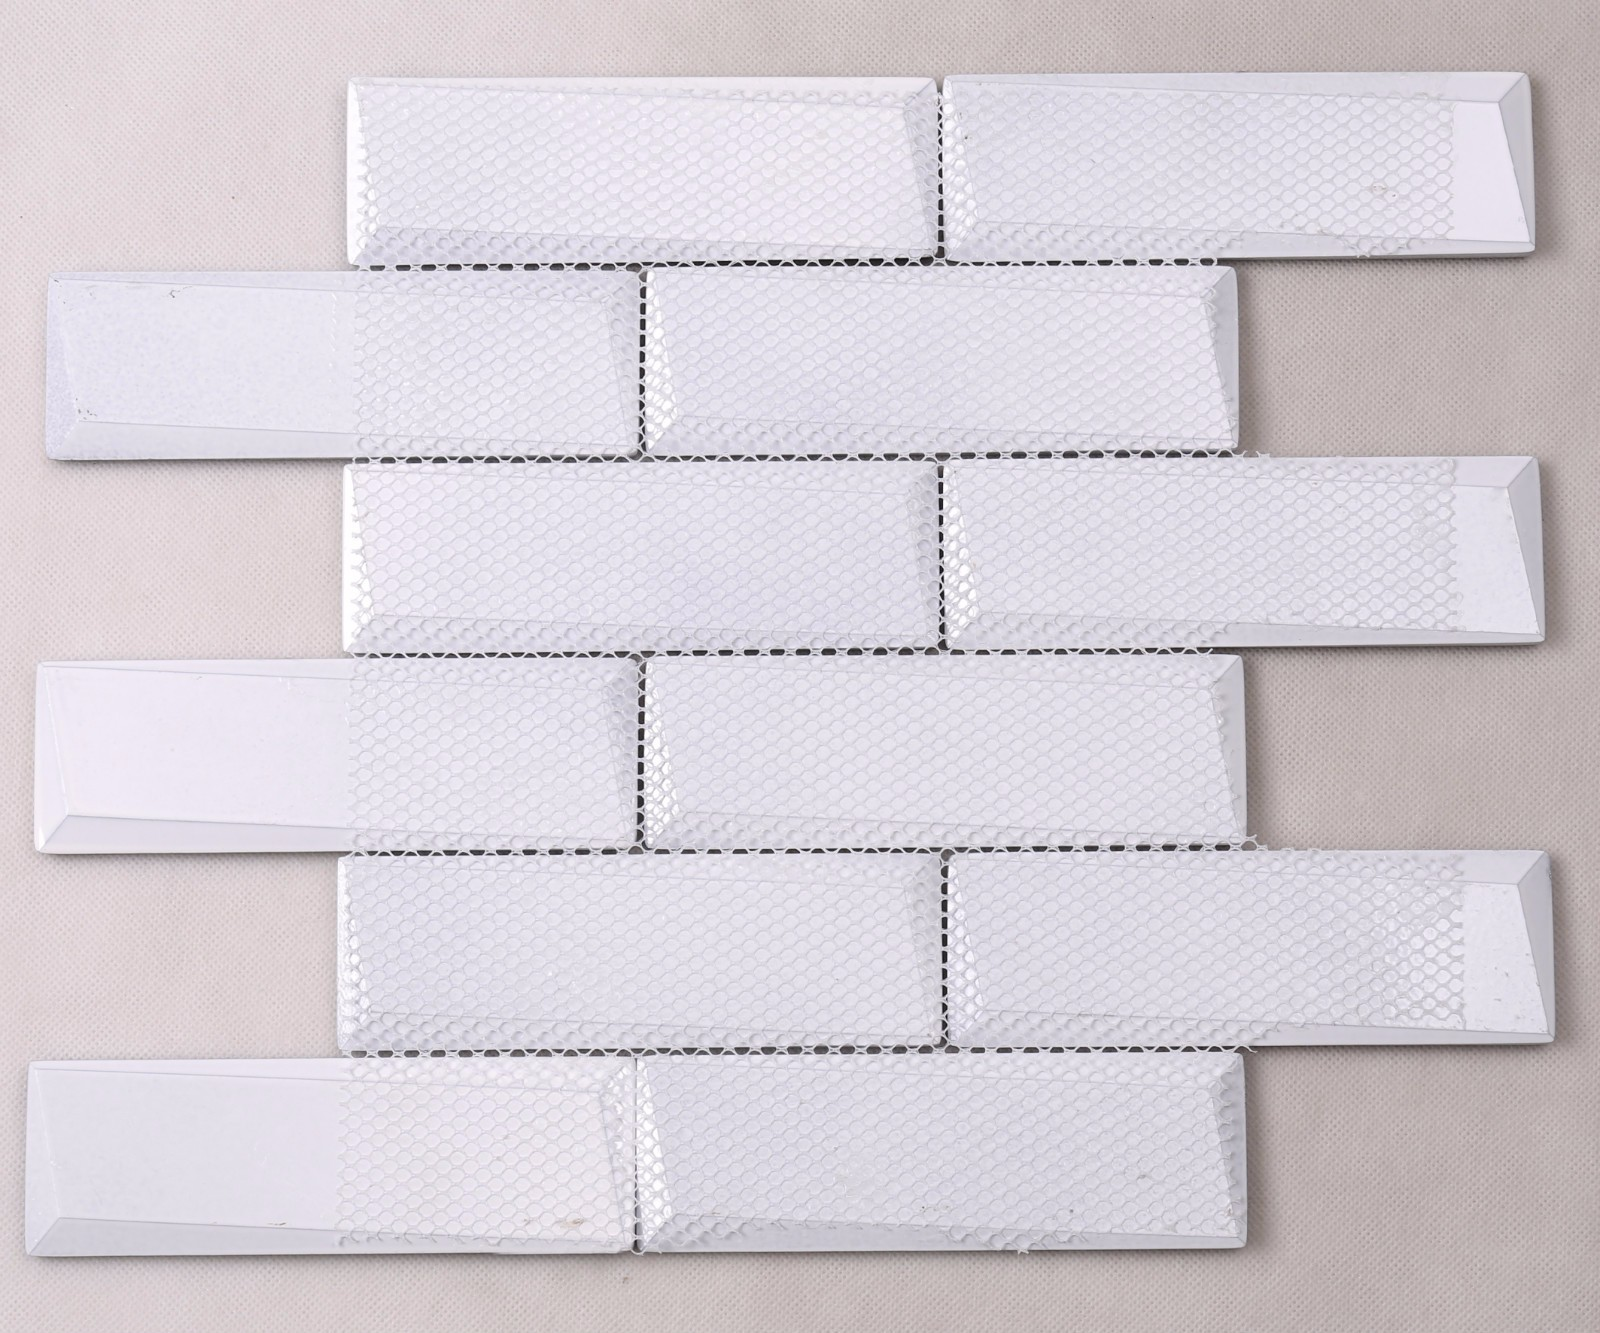 Heng Xing-Glass Metal Tile Factory, White Kitchen Backsplash | Heng Xing-4